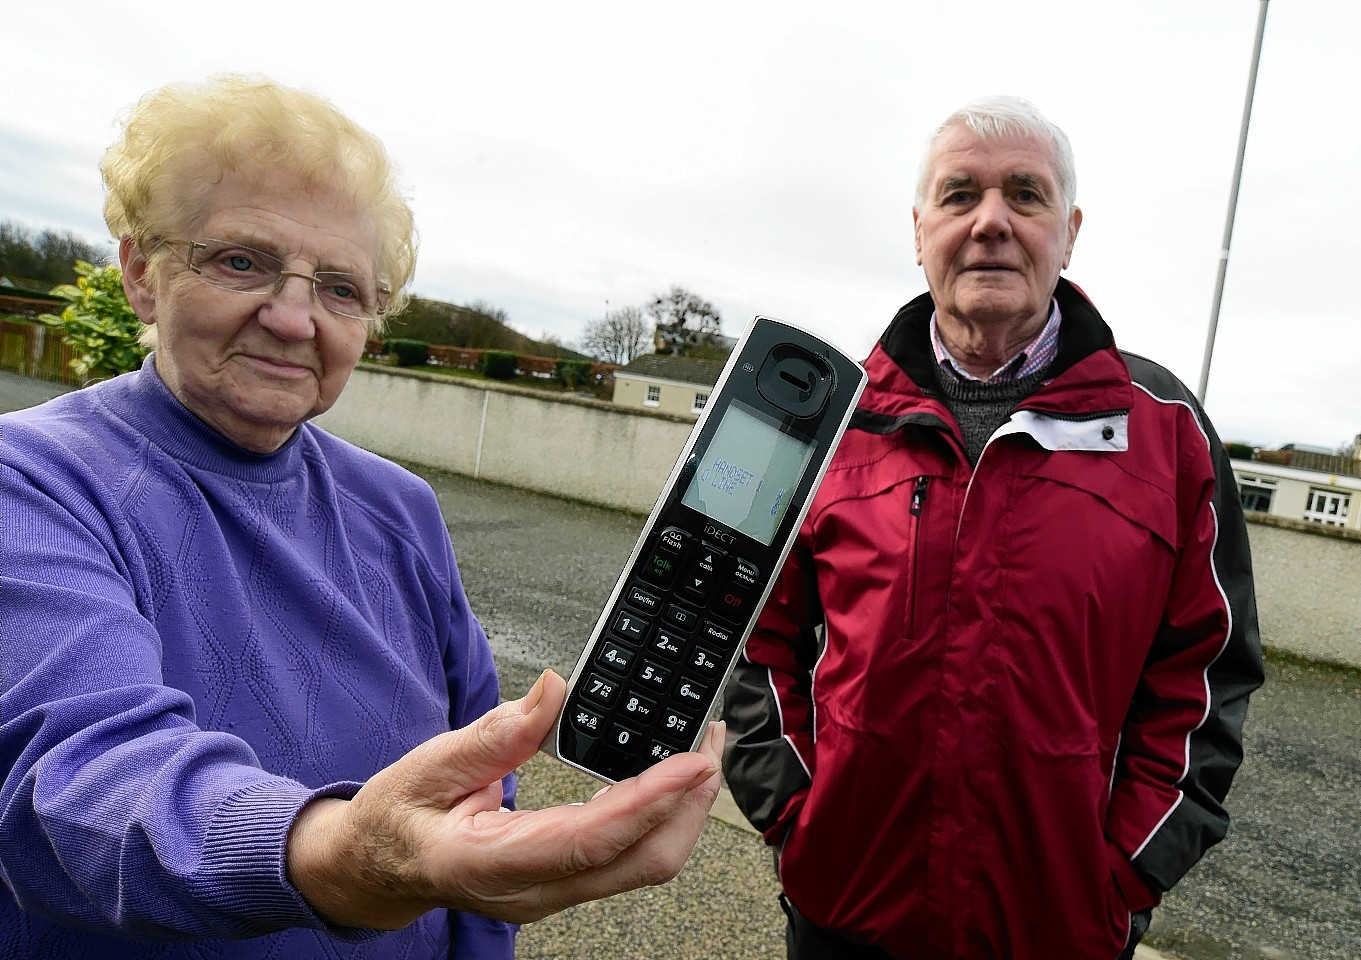 Margaret Wood, pictured with councillor Ian Gray, has been unable to make calls since December.